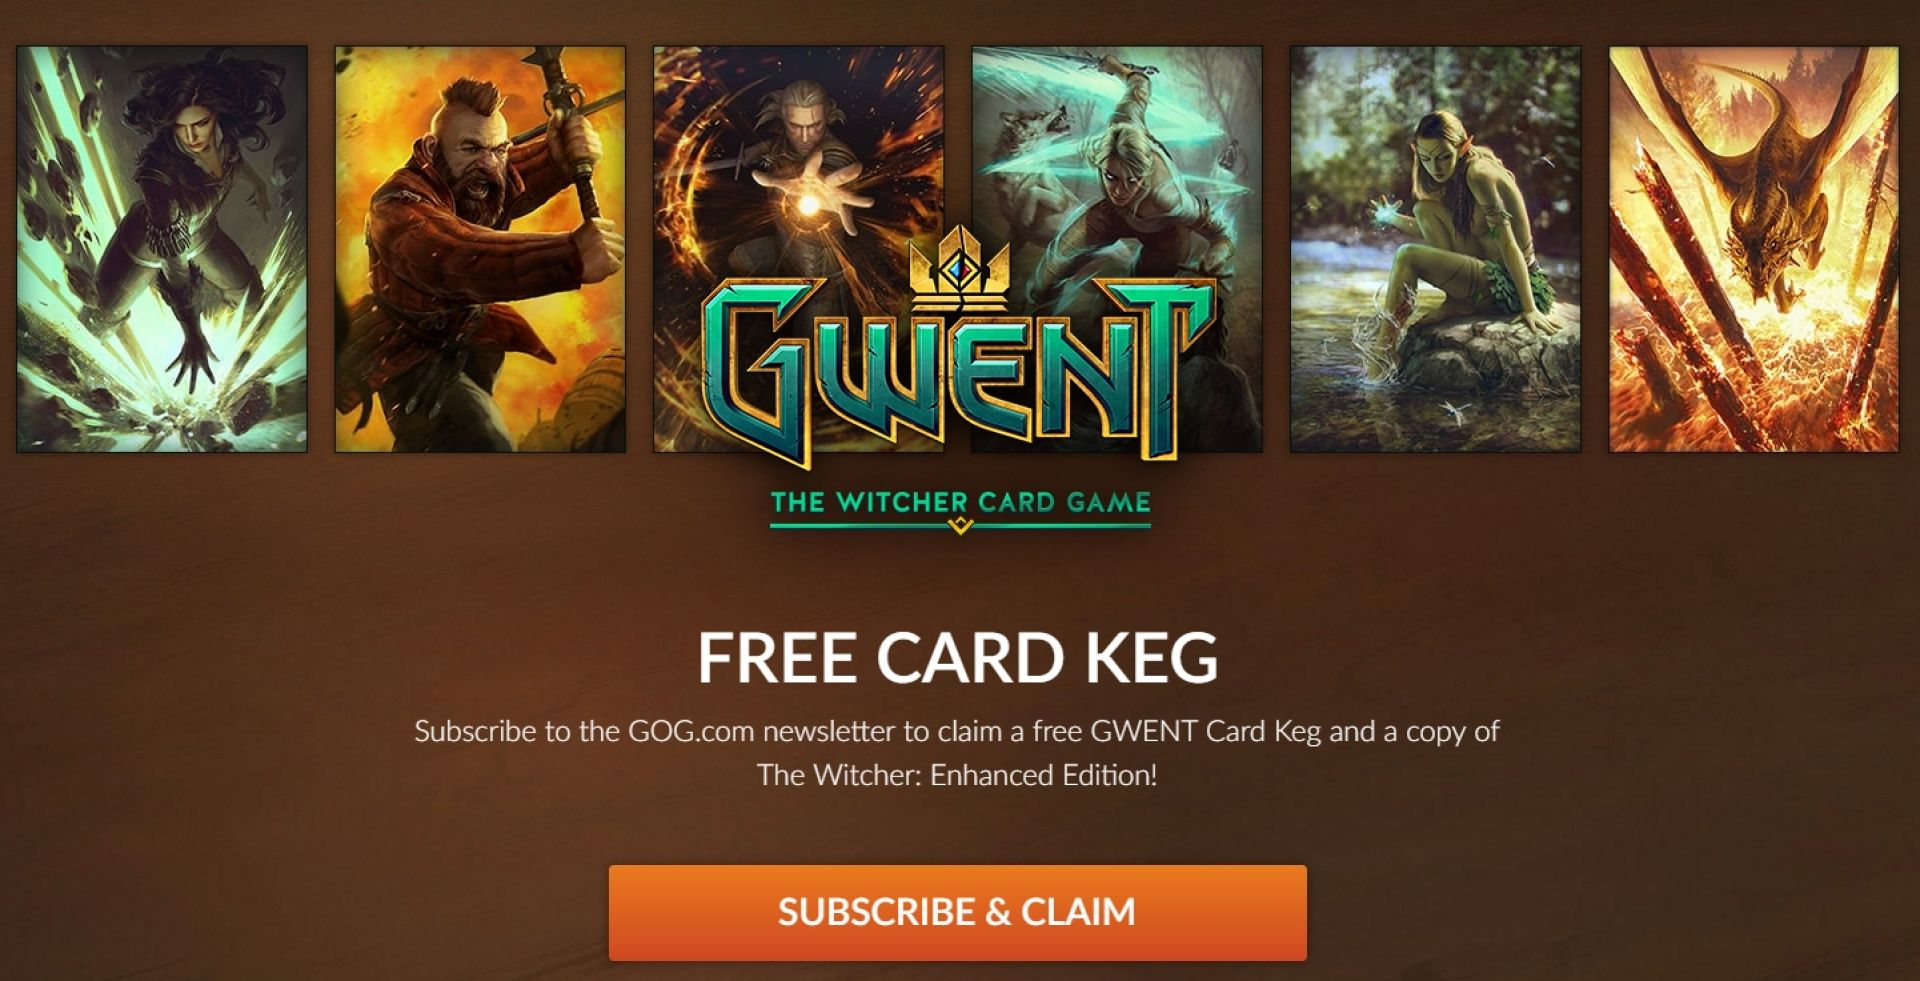 GOG.com dijeli The Witcher: Enhanced Edition ako instalirate igru GWENT: The Witcher Card Game